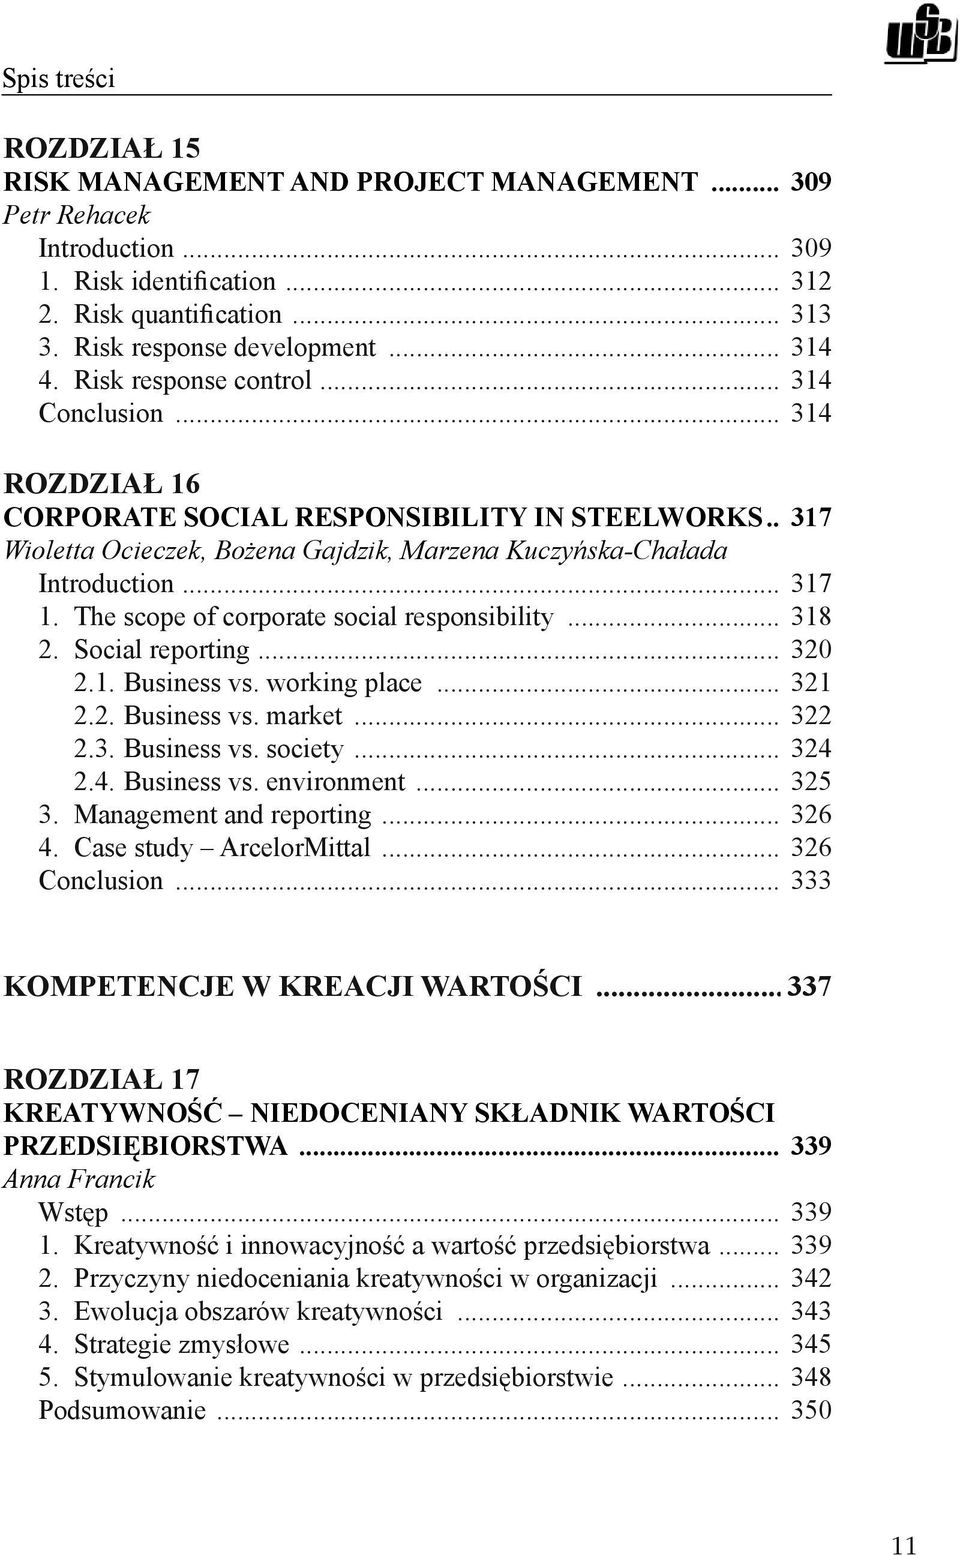 The scope of corporate social responsibility... 318 2. Social reporting... 320 2.1. Business vs. working place... 321 2.2. Business vs. market... 322 2.3. Business vs. society... 324 2.4. Business vs. environment.